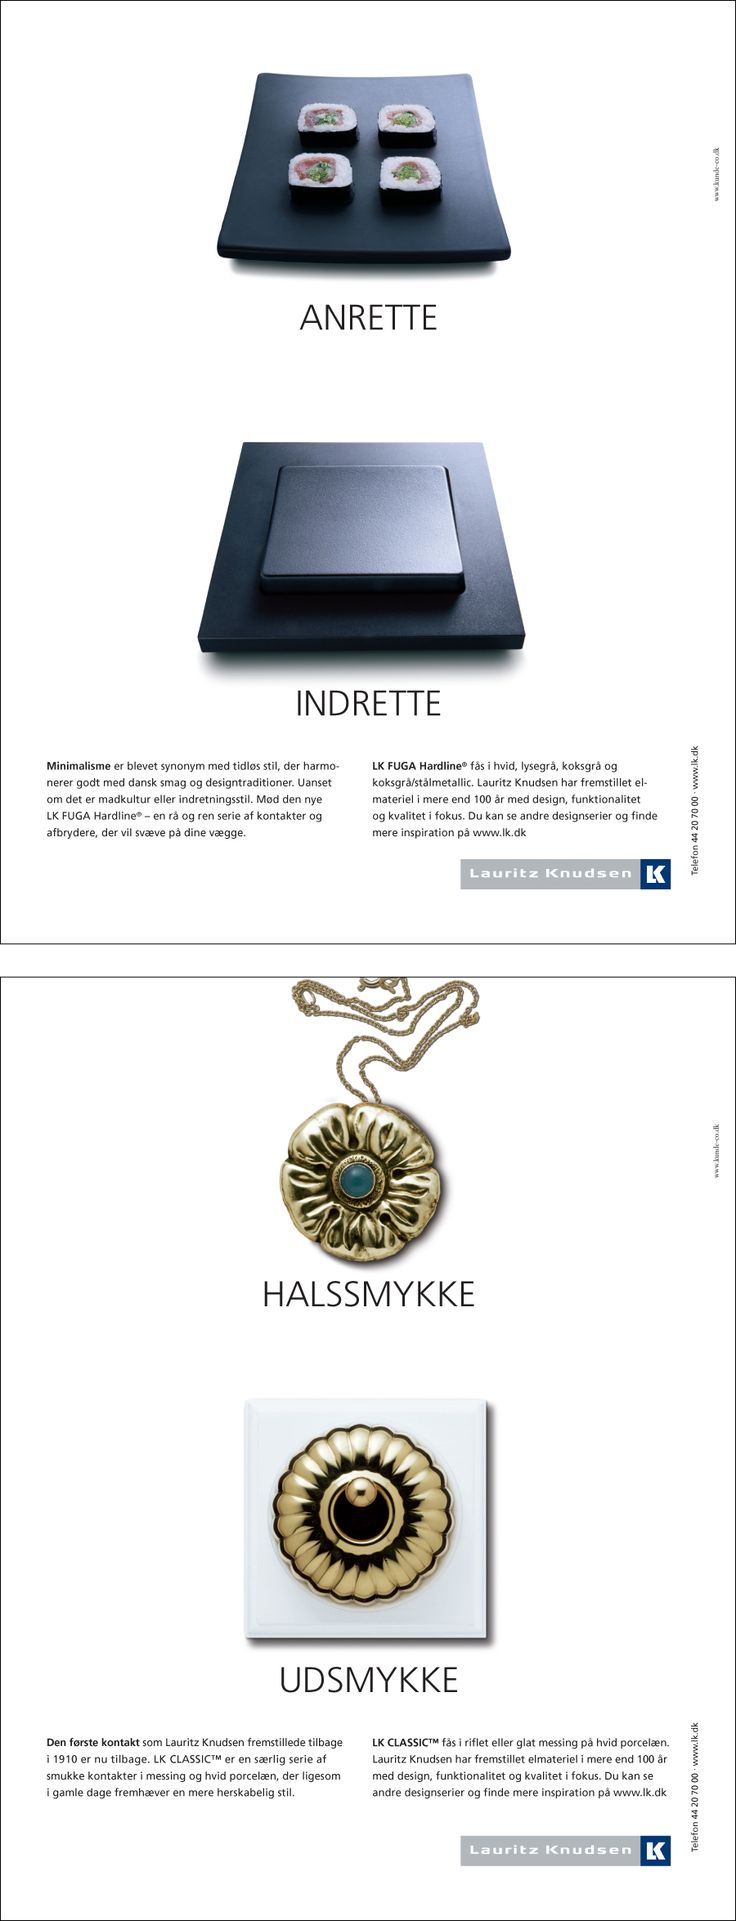 Lauritz Knudsen - annoncer #otteogtyvetres #kundeco #artdirection #print #advertising